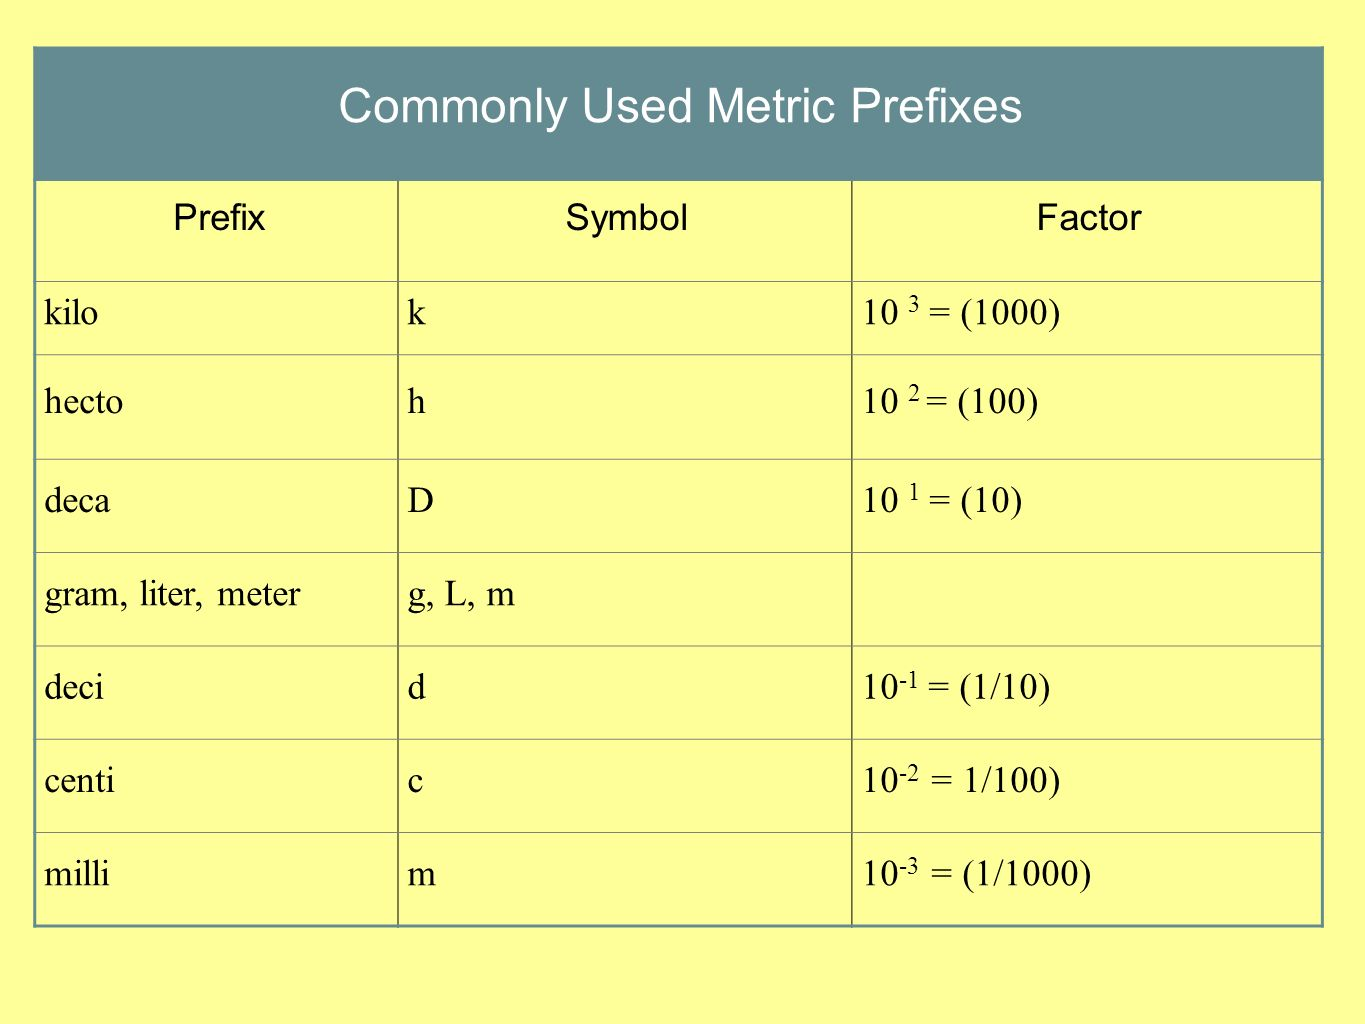 Chapter 32 units of measurement ppt download 4 commonly used metric prefixes biocorpaavc Gallery